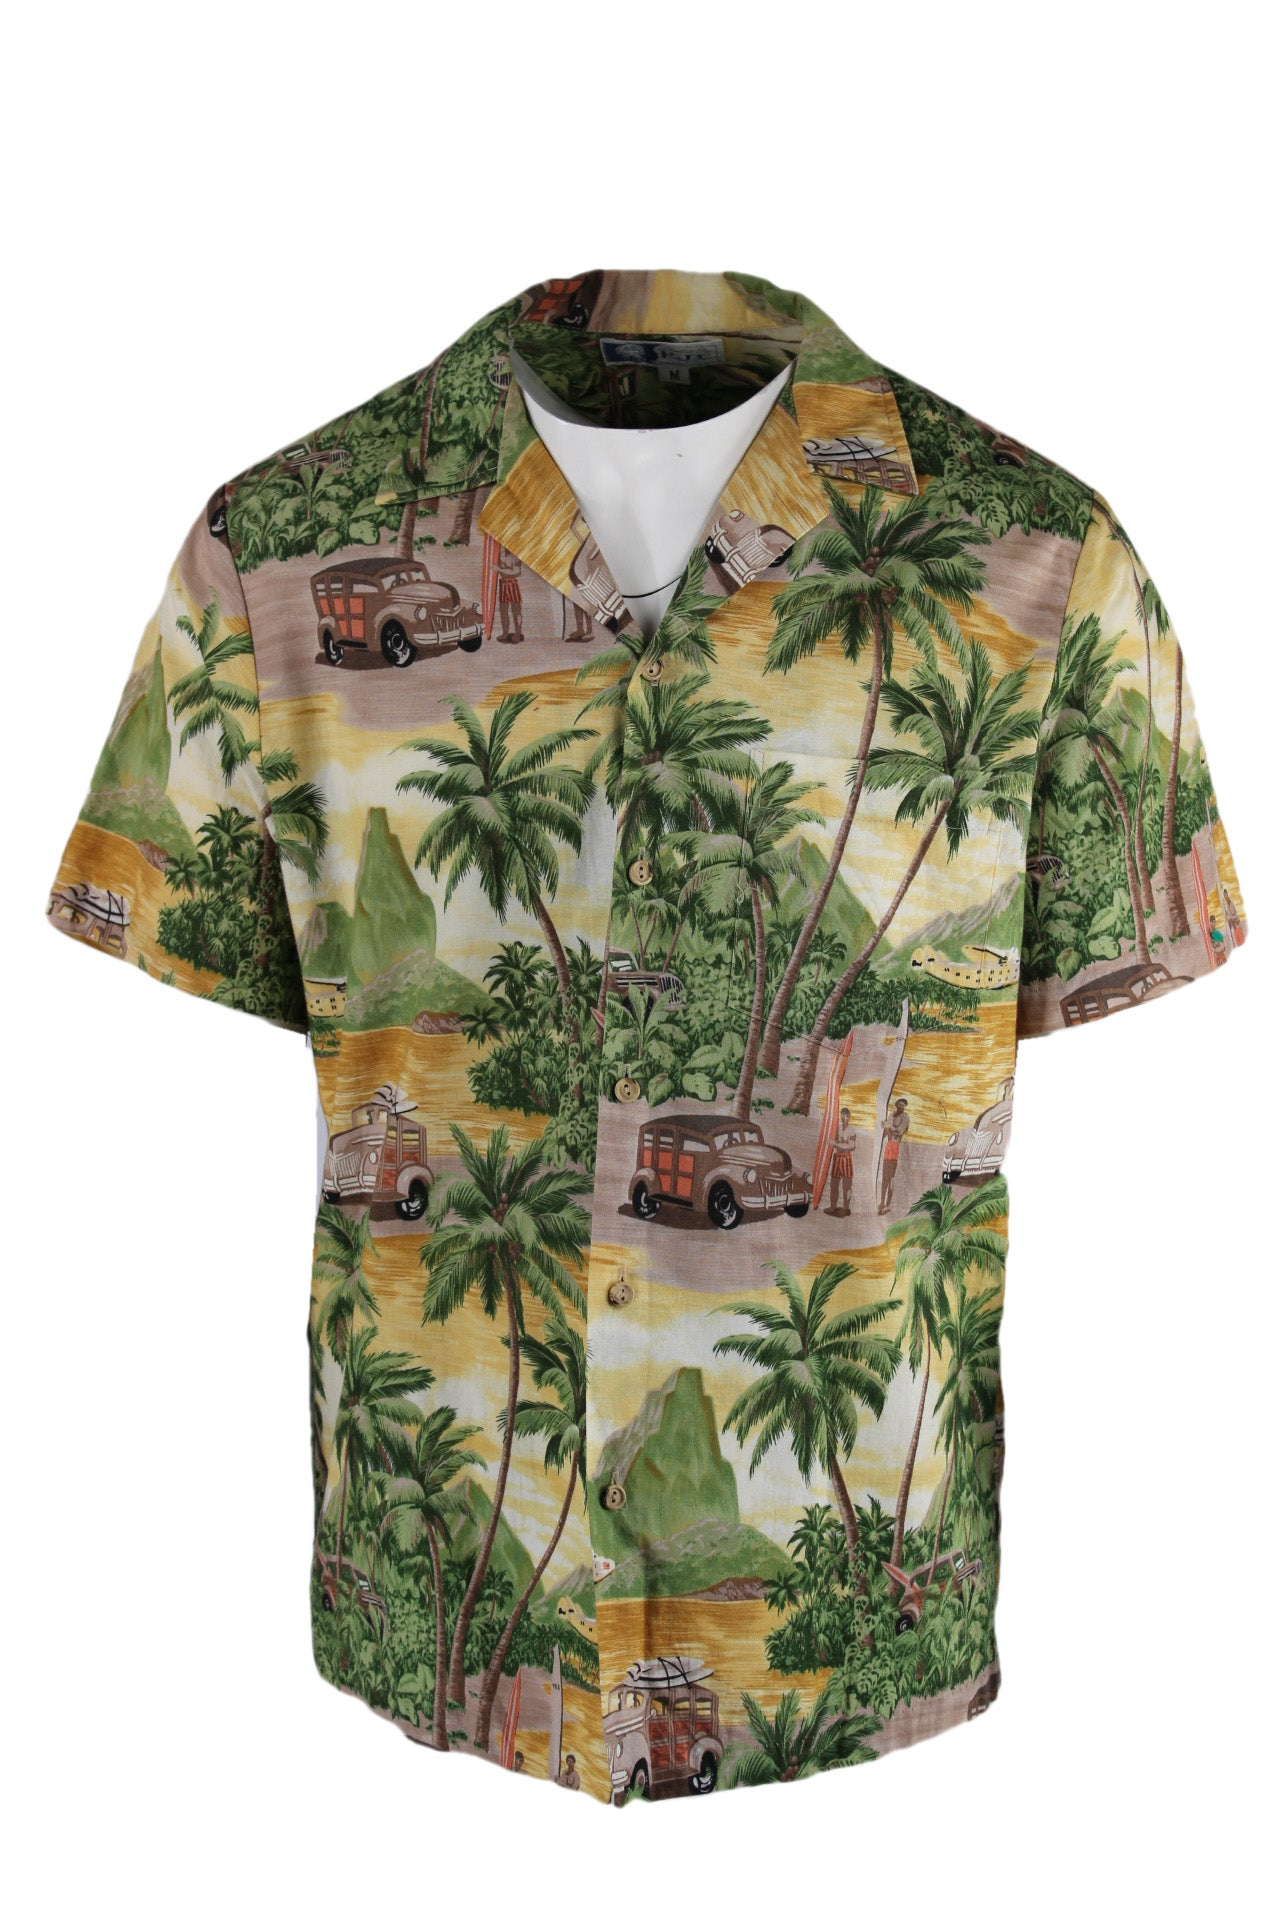 vintage styled by rjc palm tree button down shirt. features multicolor island print exterior, brown wooden look buttons, exterior pocket and short sleeves.